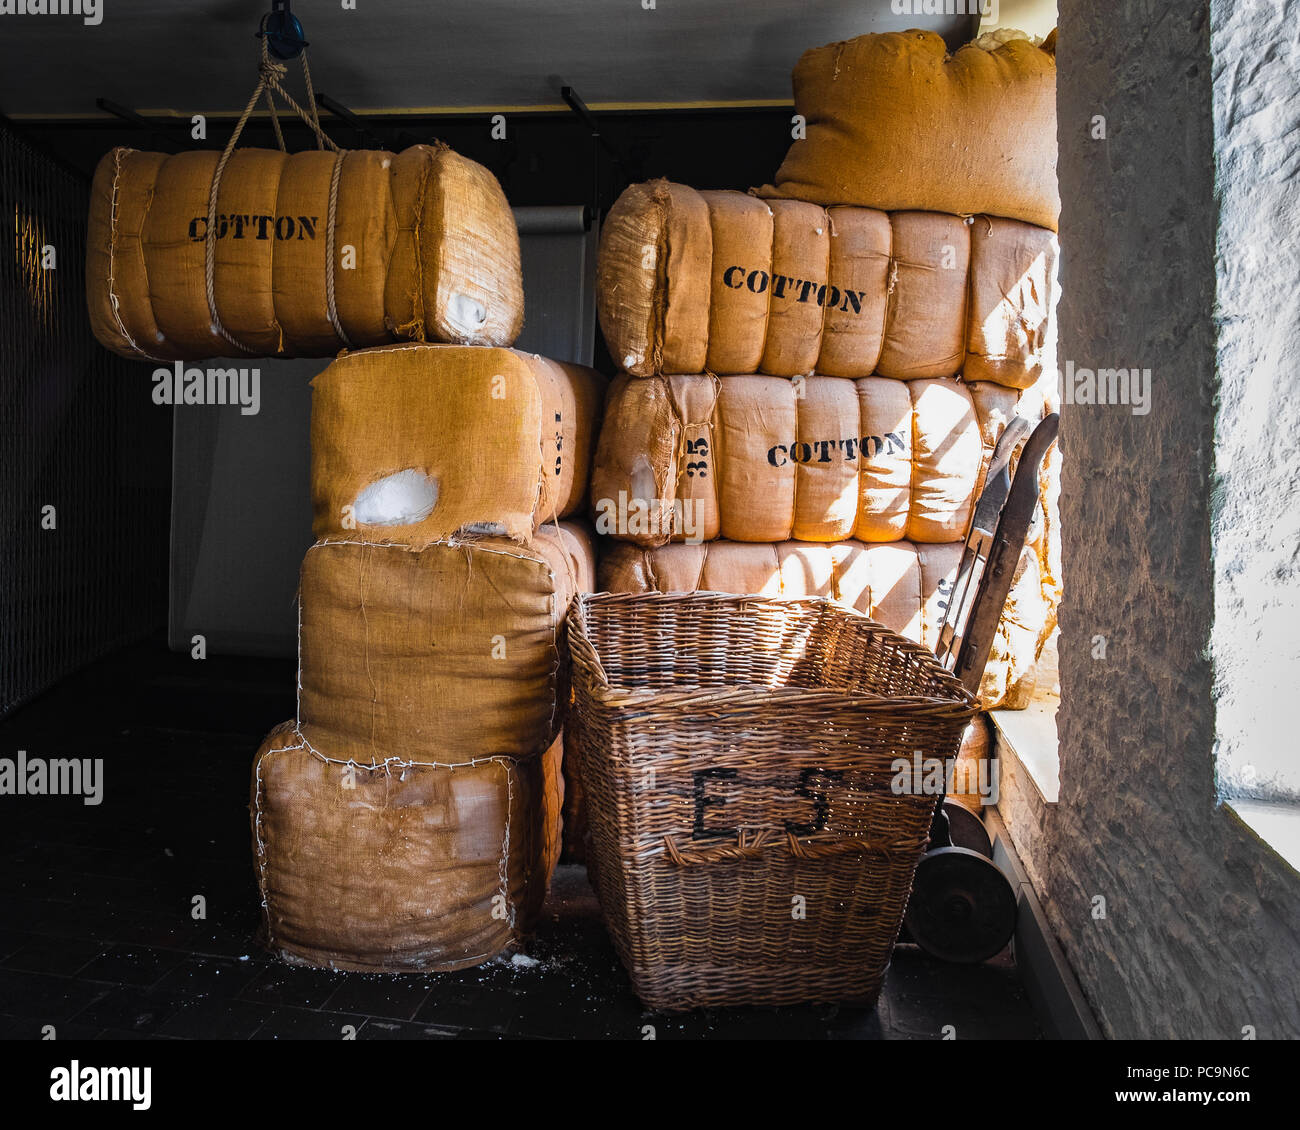 Large bales of cotton in the warehouse room - Stock Image